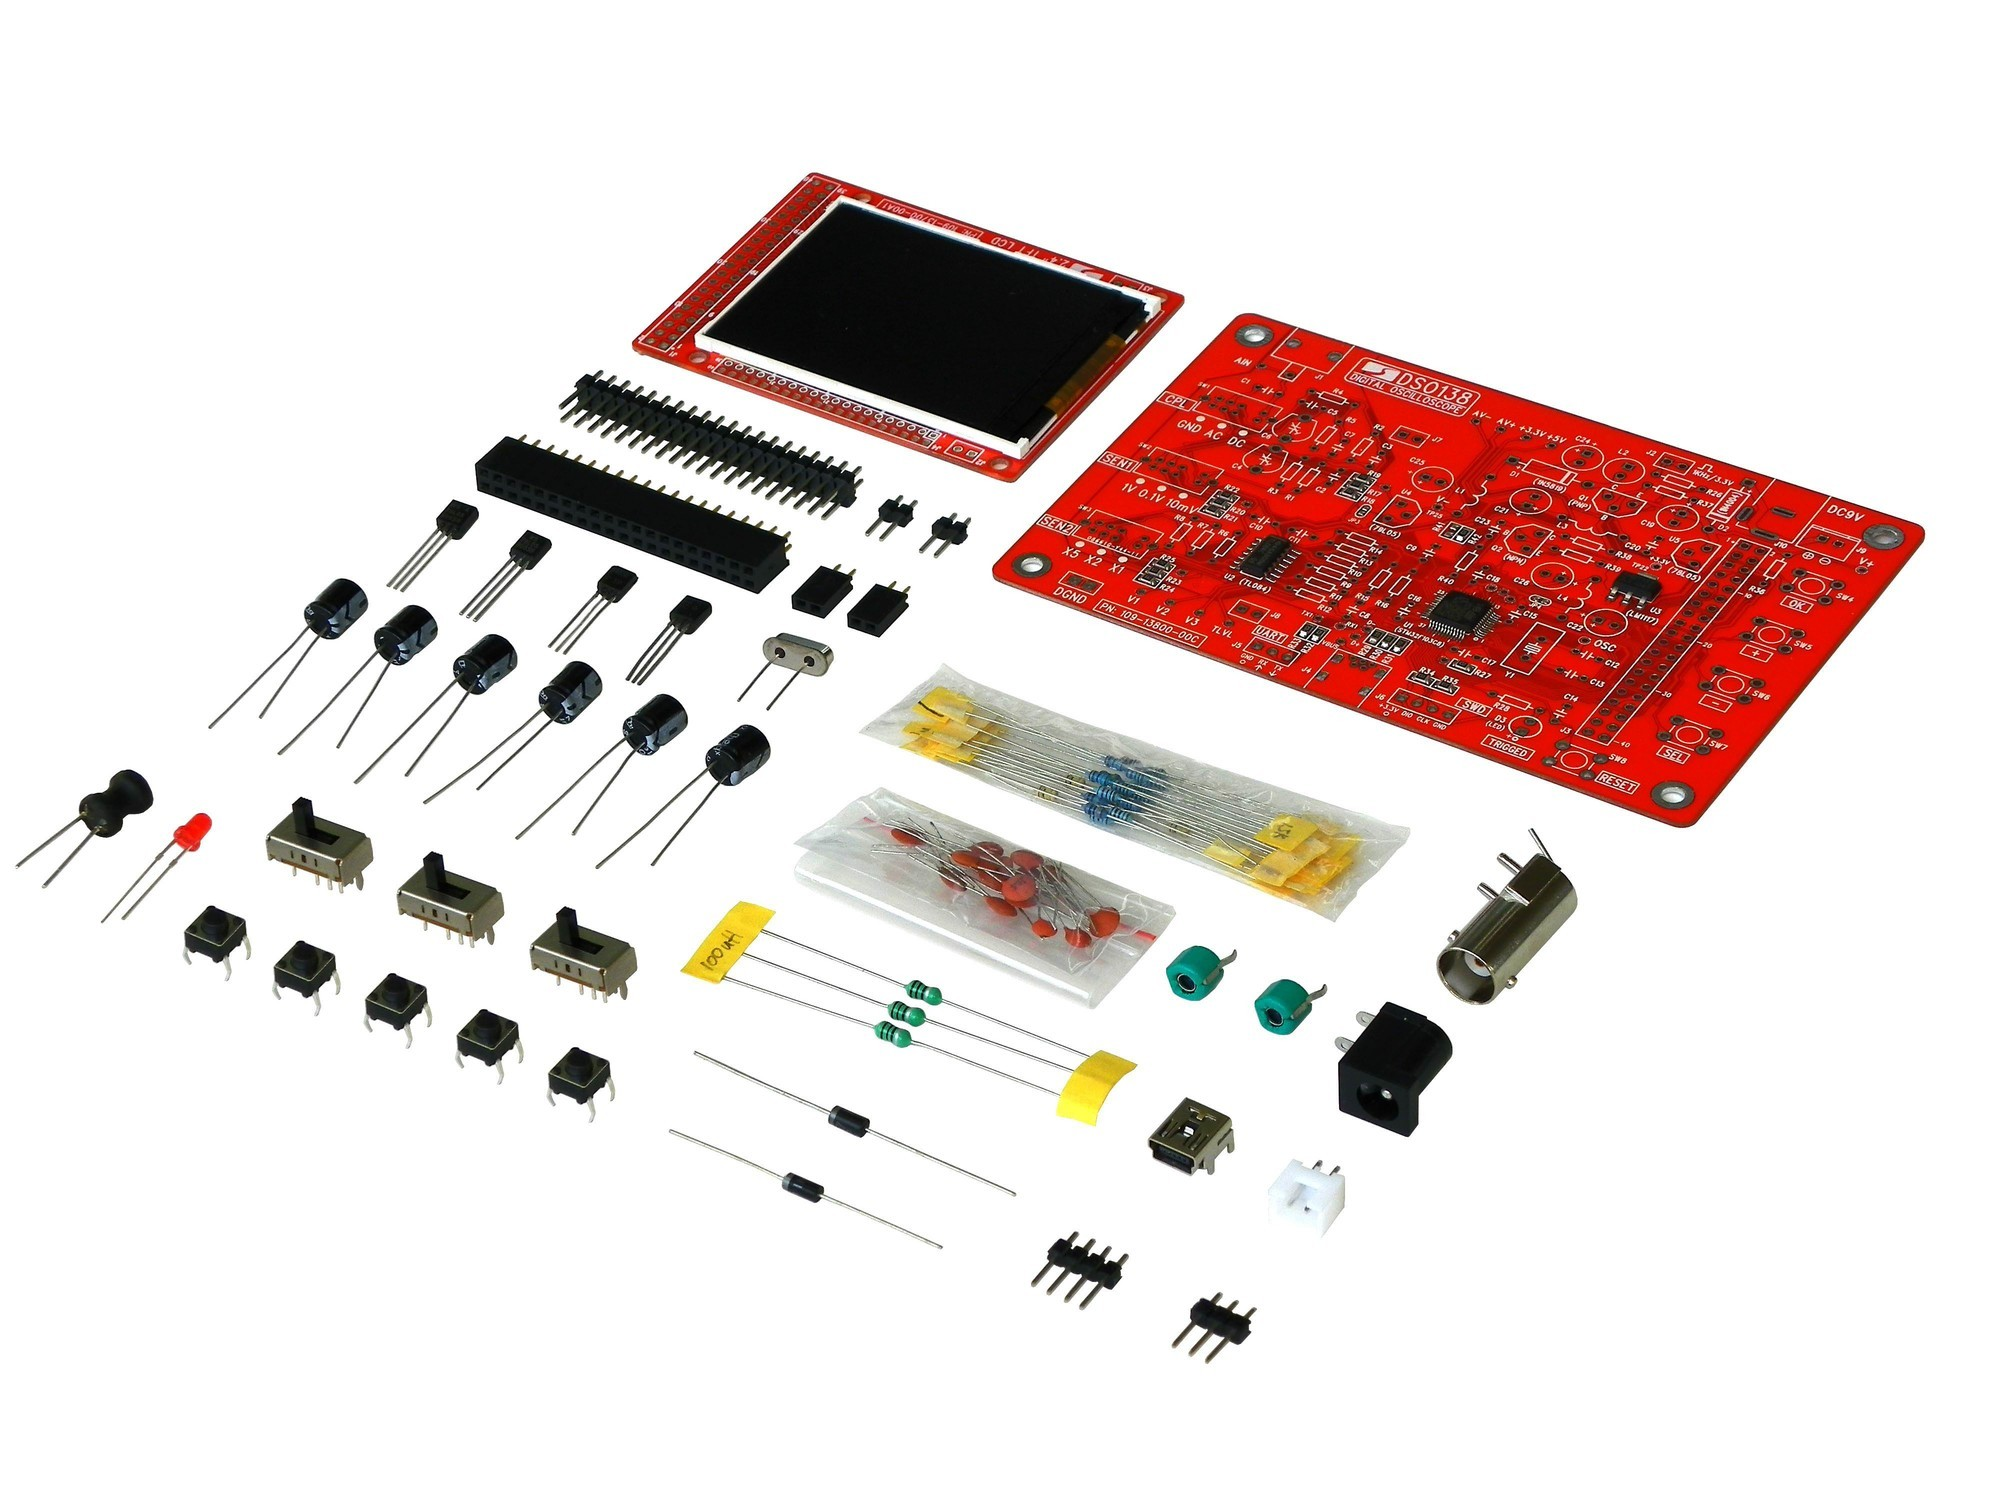 JYE Tech DSO138 Oscilloscope DIY Kit